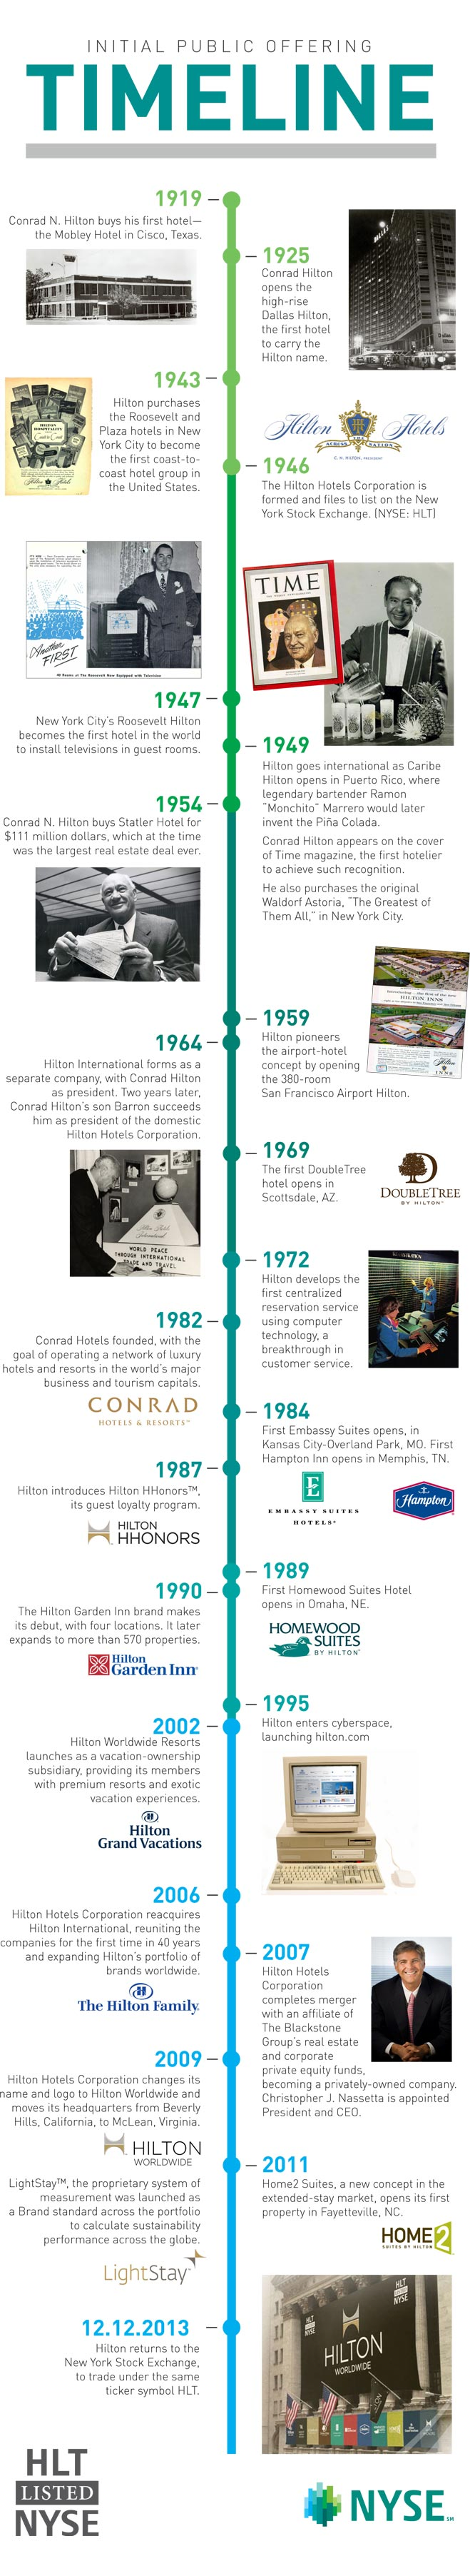 A Timeline Of Hilton Worldwide Milestones From The First Hotel In Texas To Return Nyse